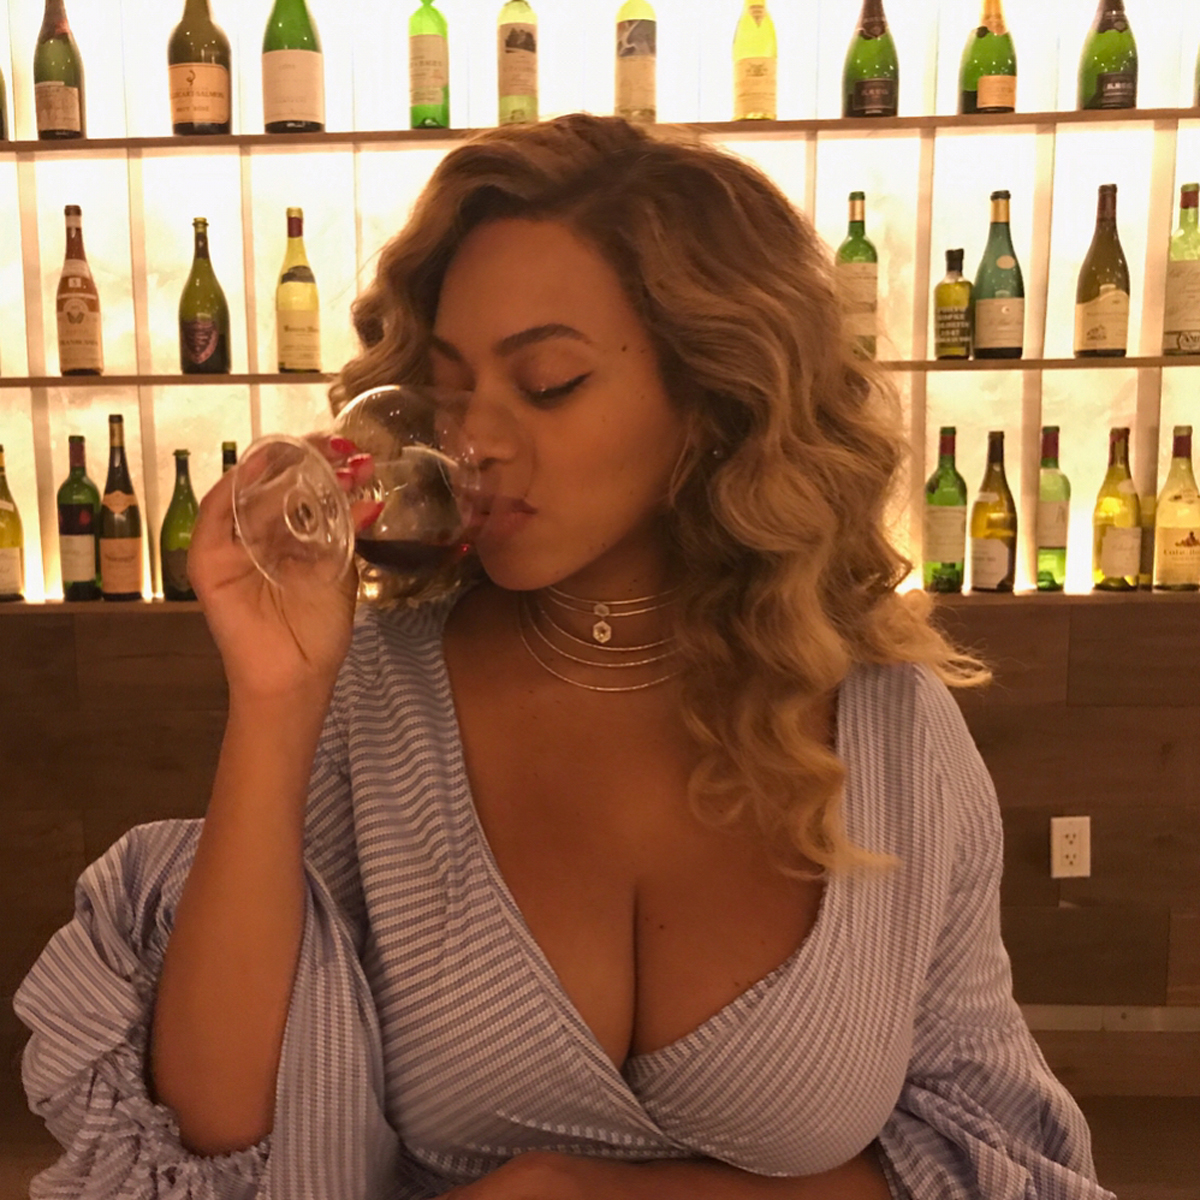 Beyoncé Looks Incredible in Sexy Wrap Dress 7 Weeks After Giving Birth